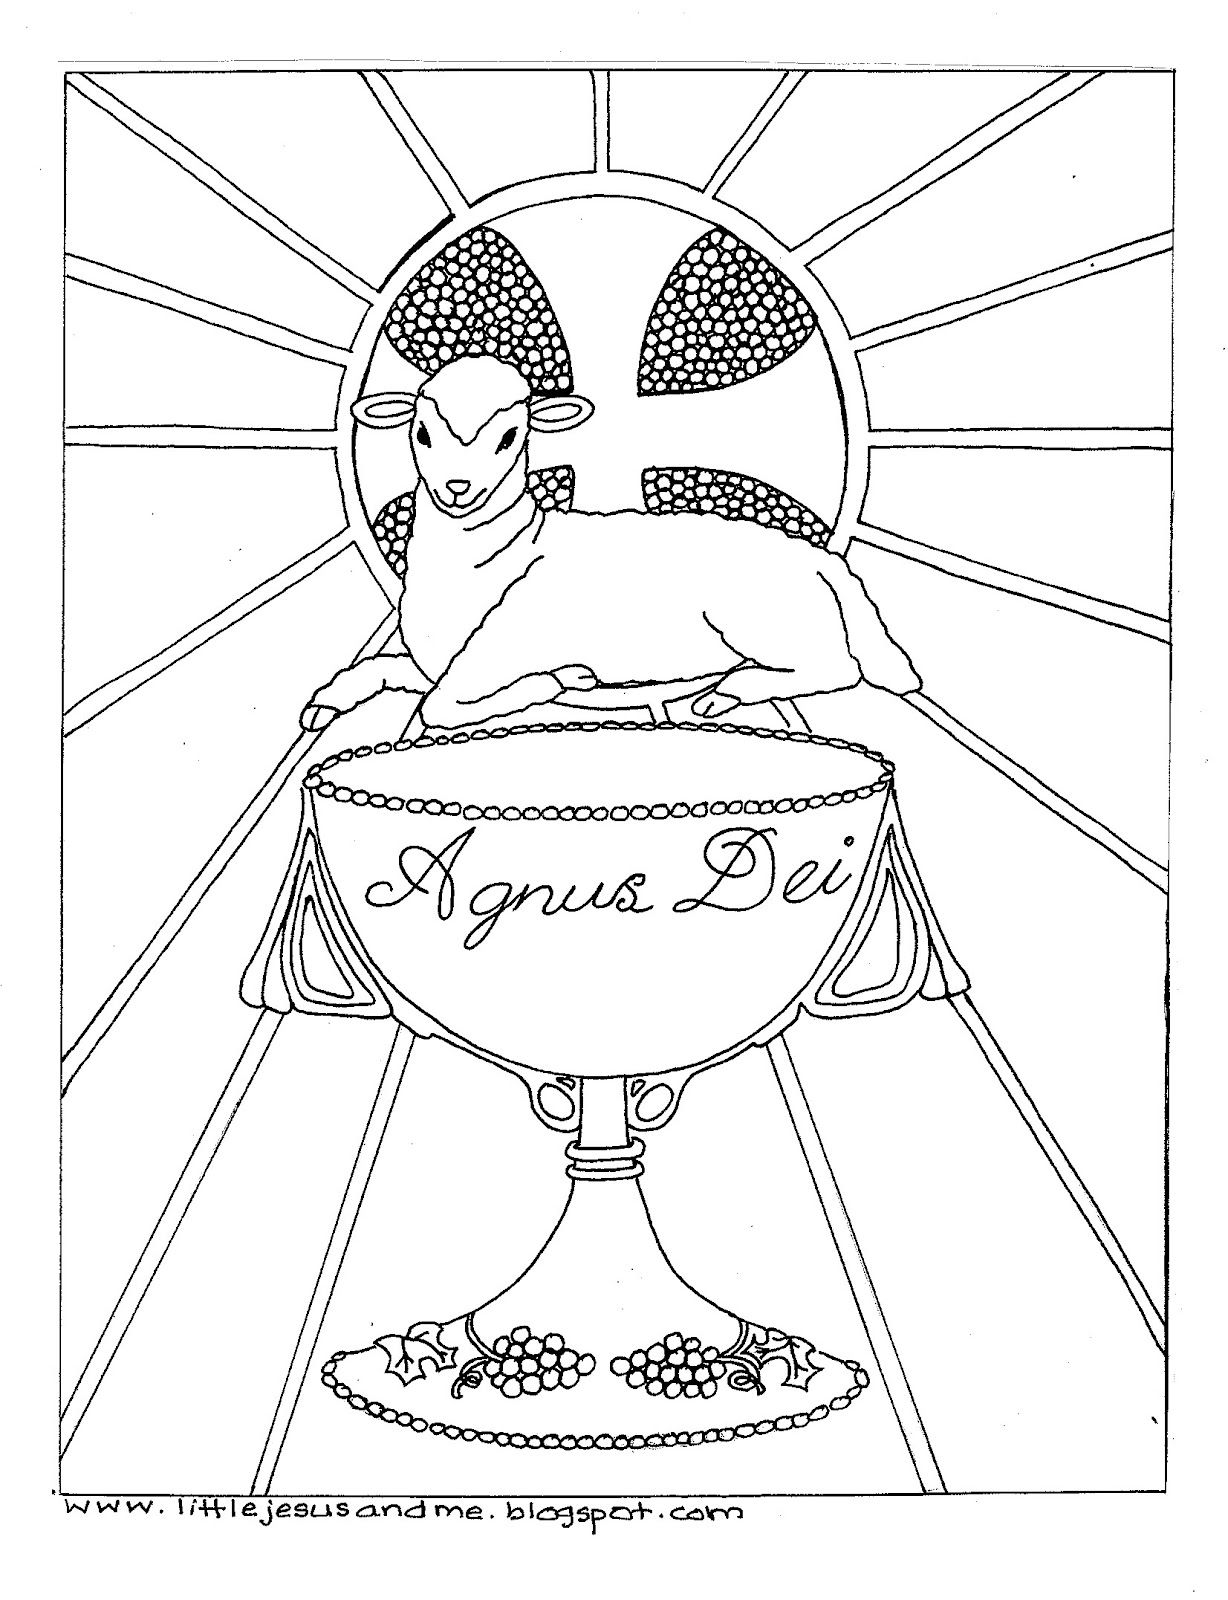 Little Jesus And Me Coloring Pages Amazing Coloring Pages To Print Desenho Religioso Imagens Catolicas Artesanato Em Tecido